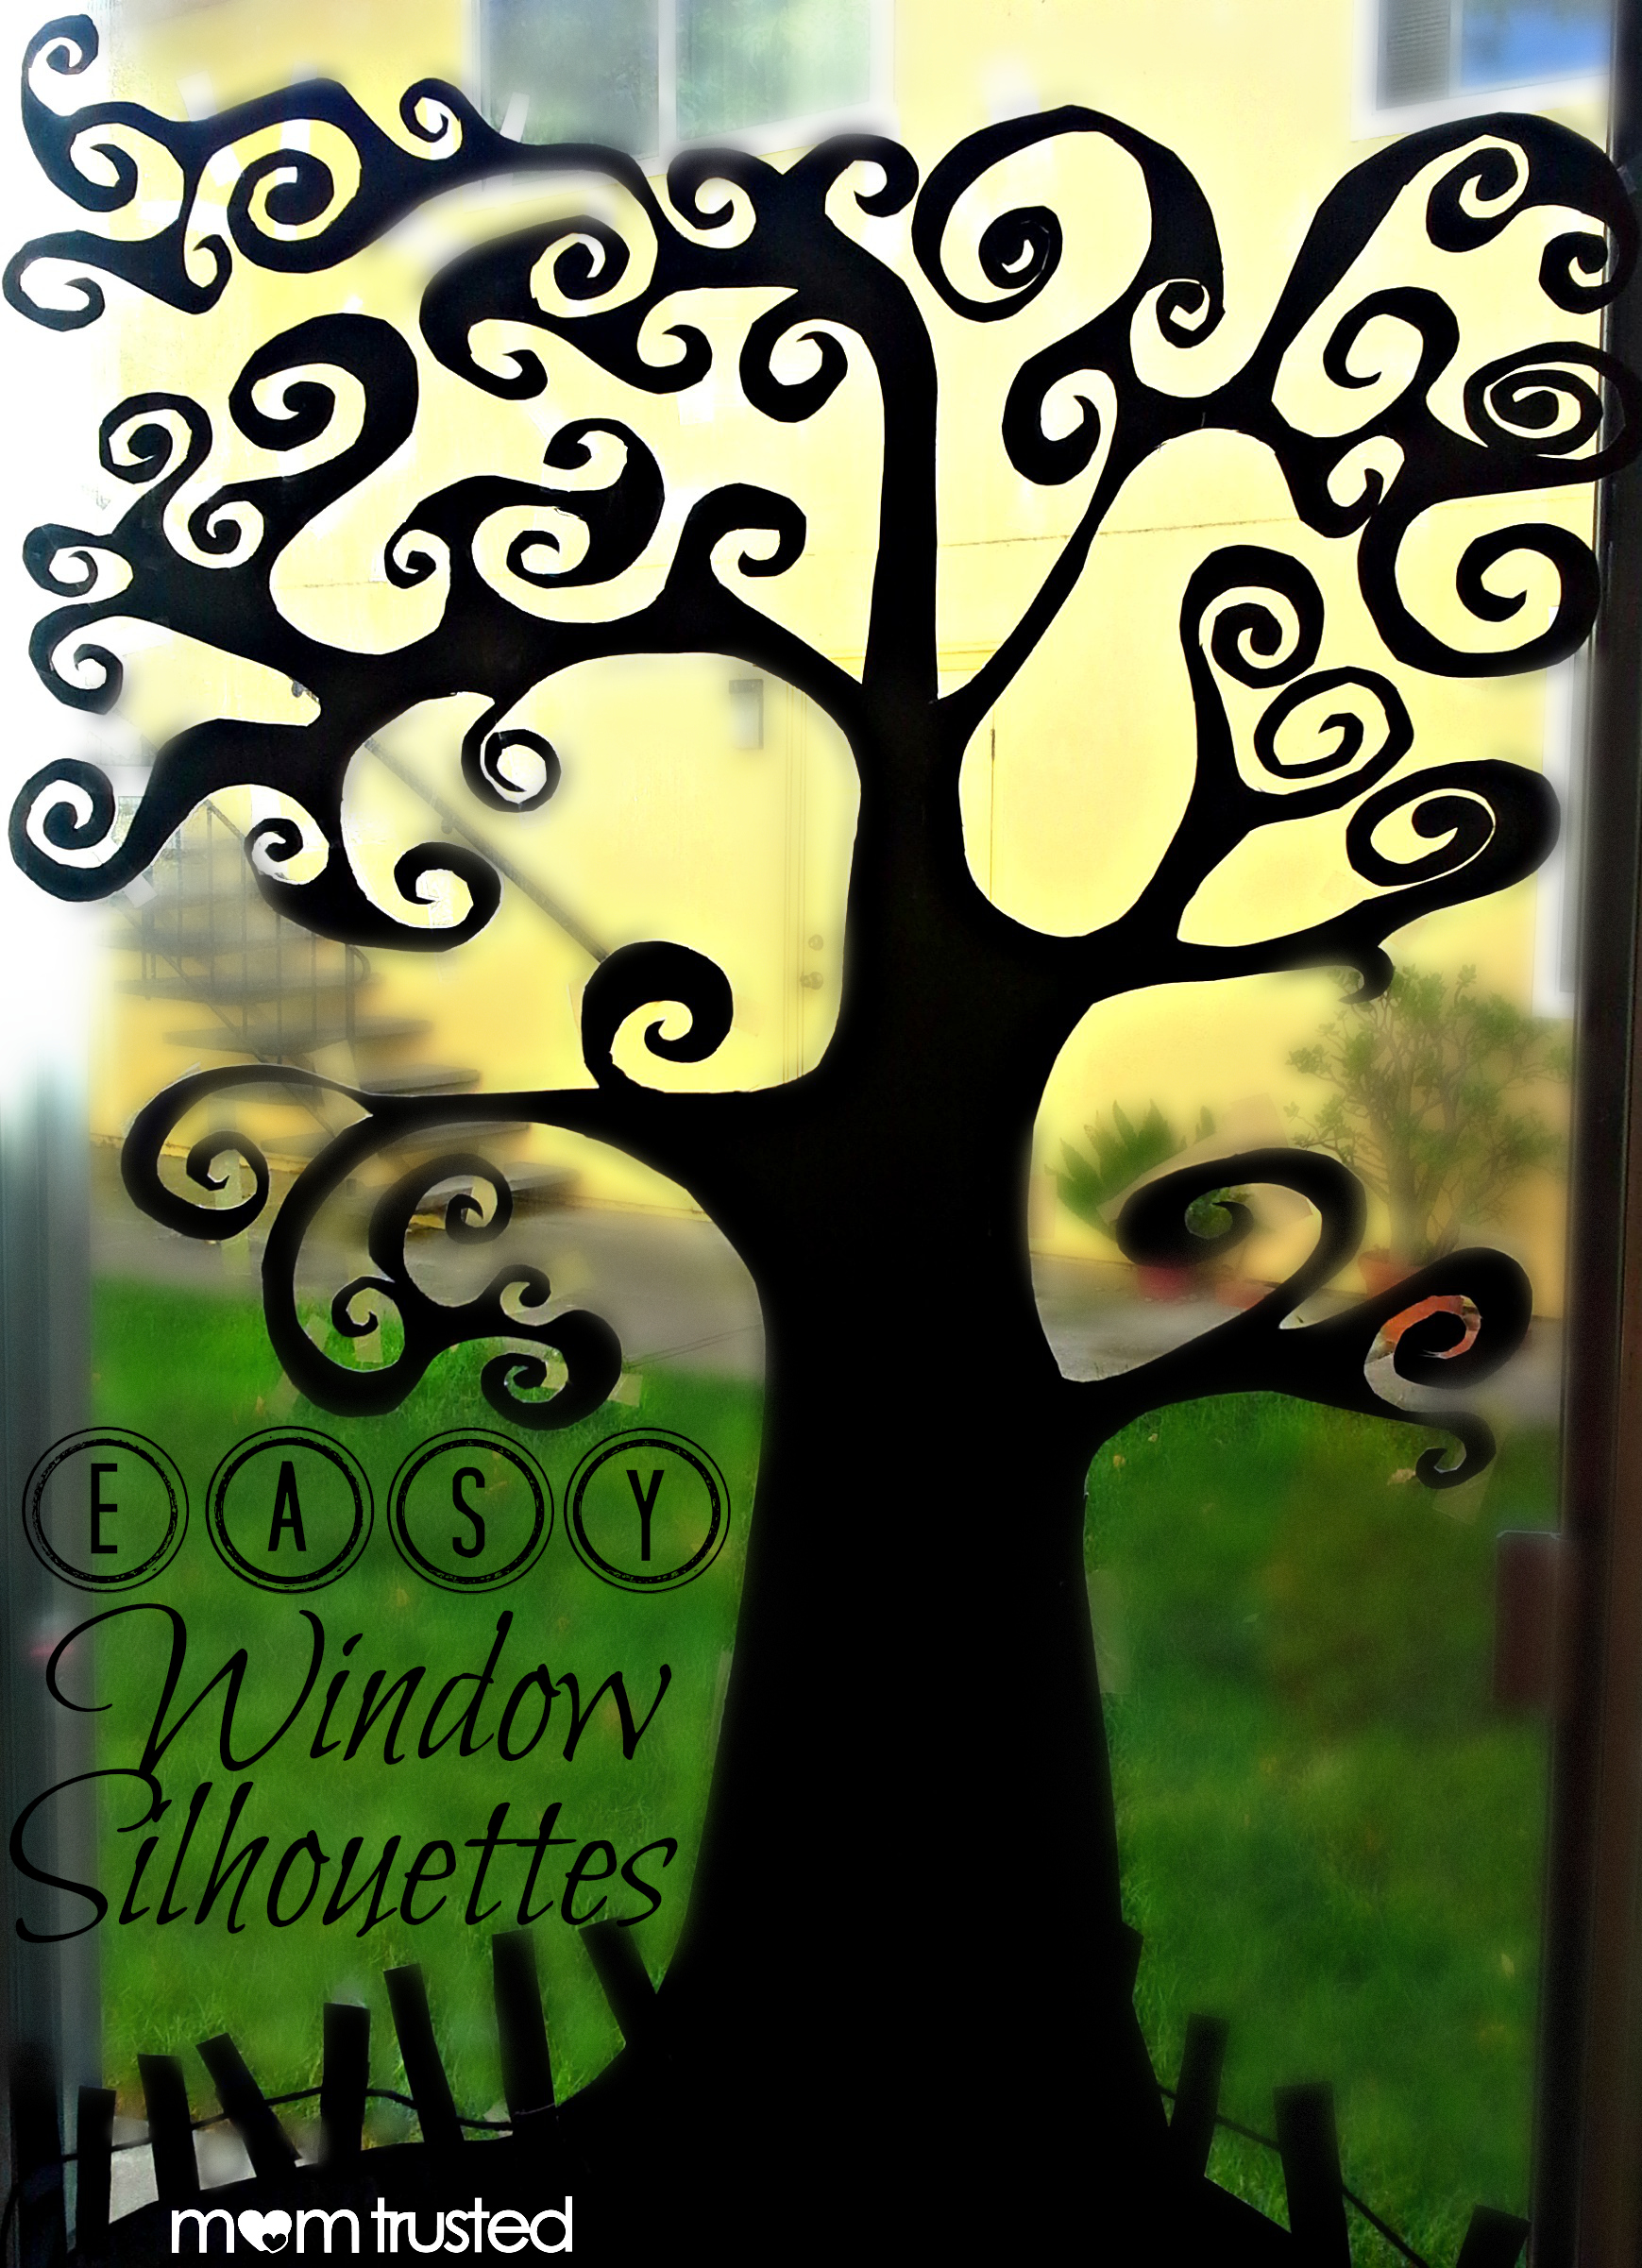 Easy Window Silhouettes